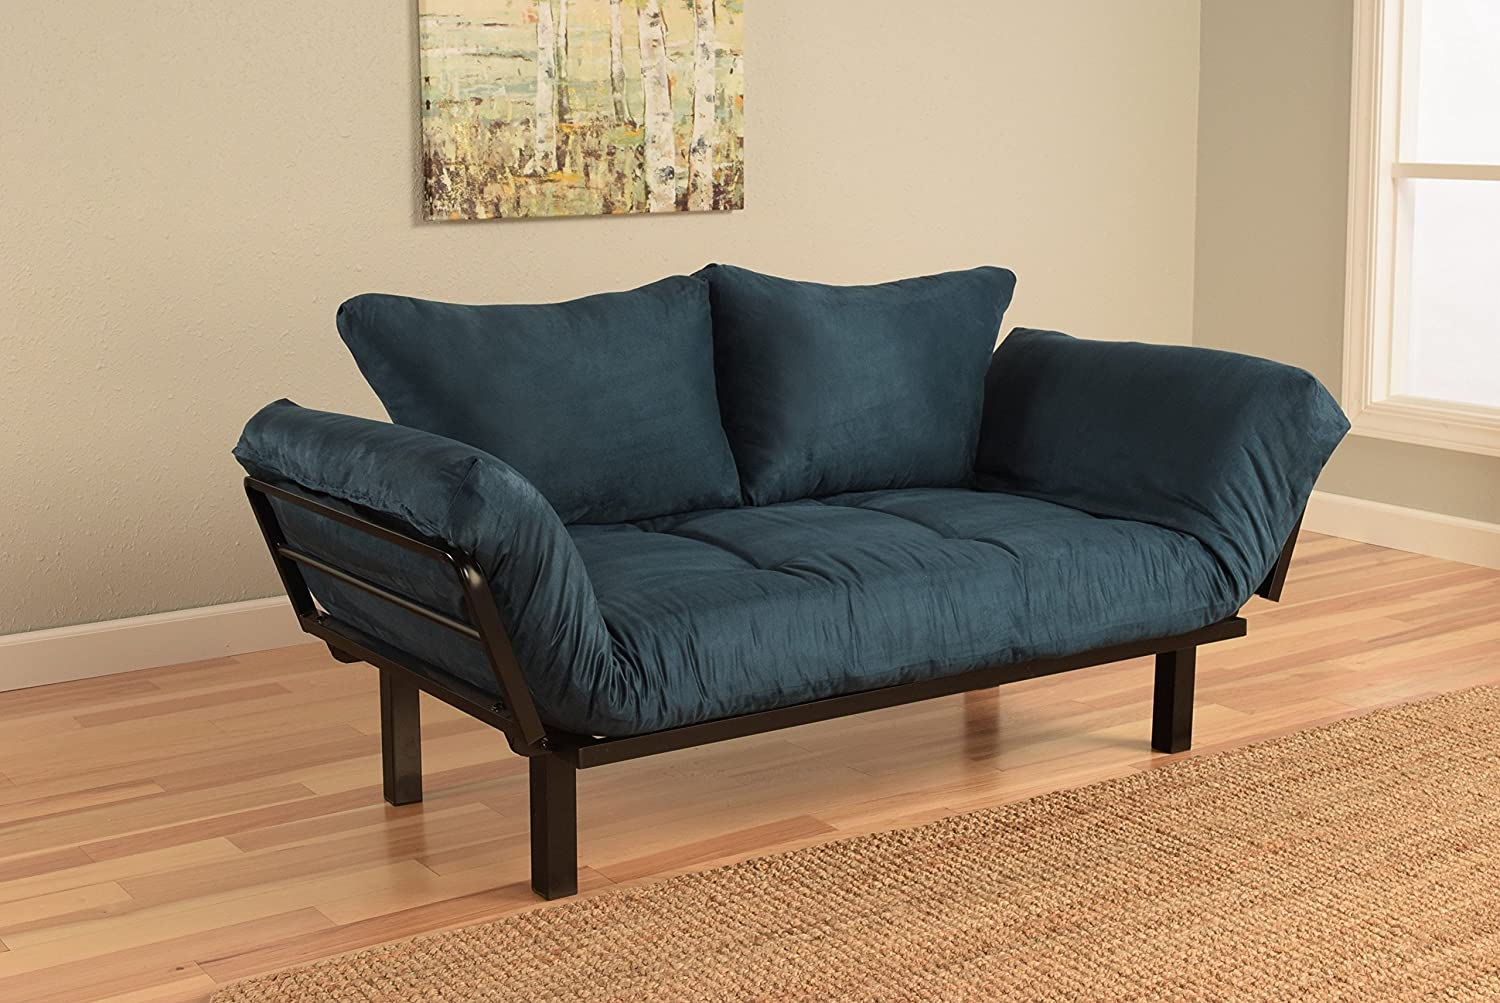 loveseat dorm decor back furniture couch sofa home gallery set to and couches room